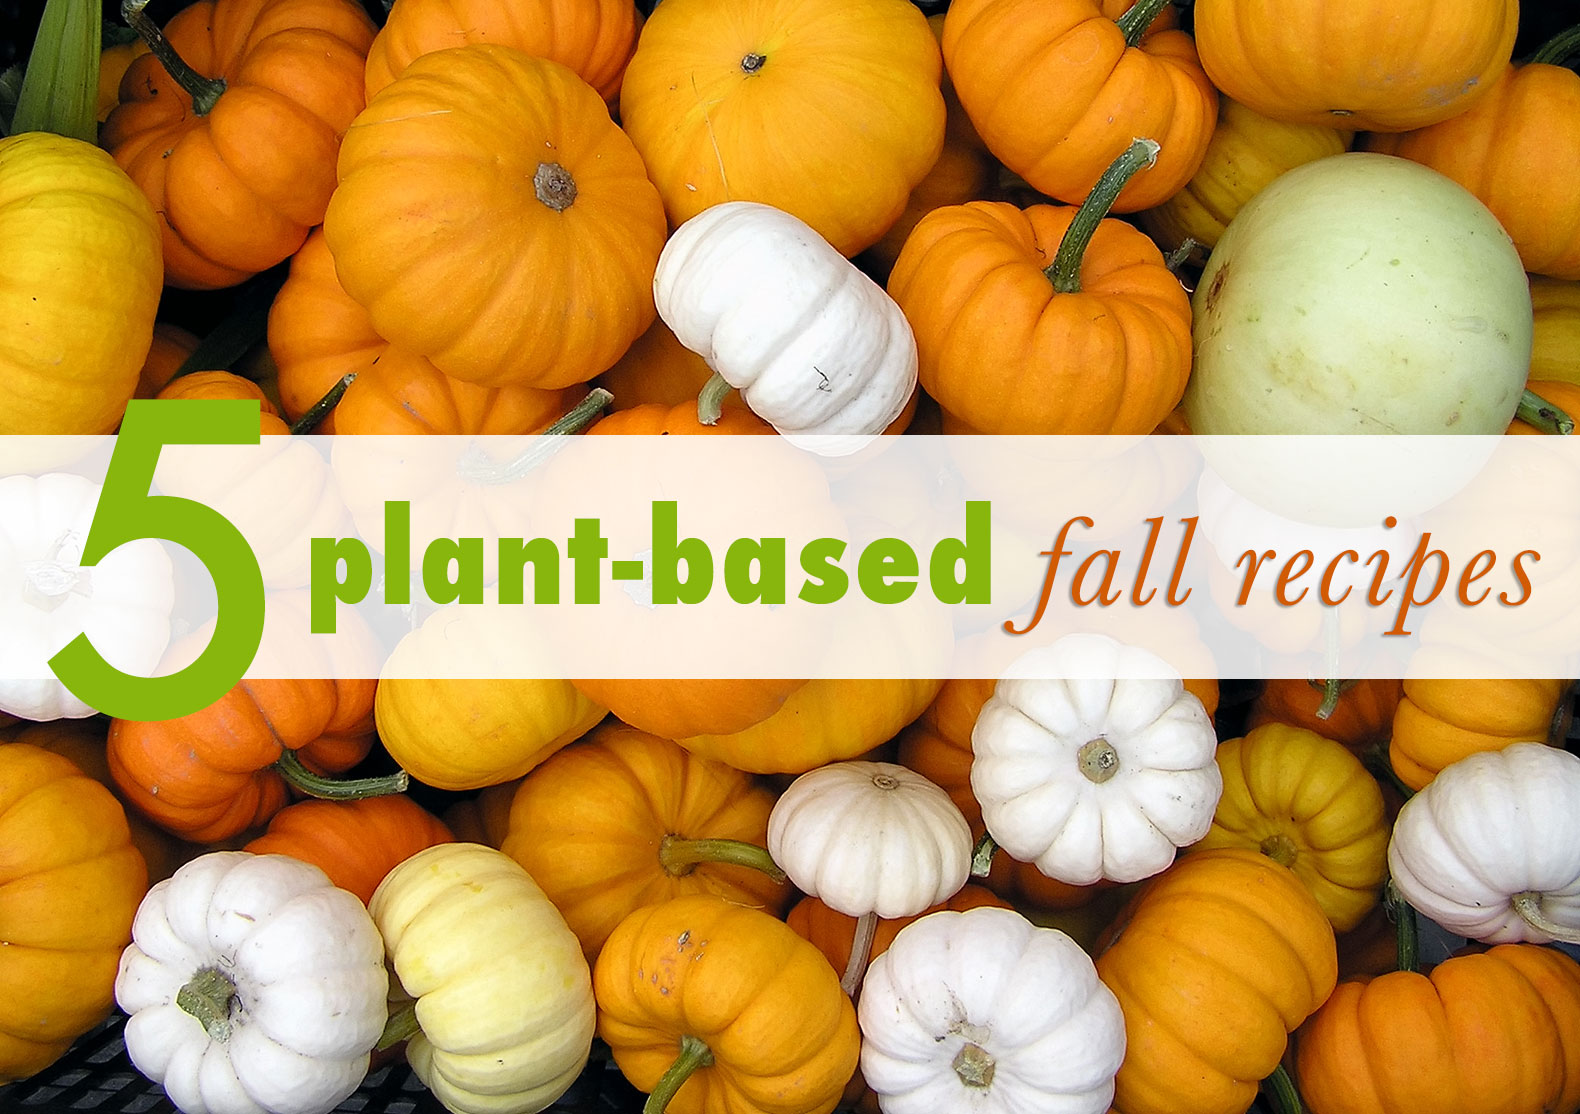 5 Mouthwatering plant-based fall recipes